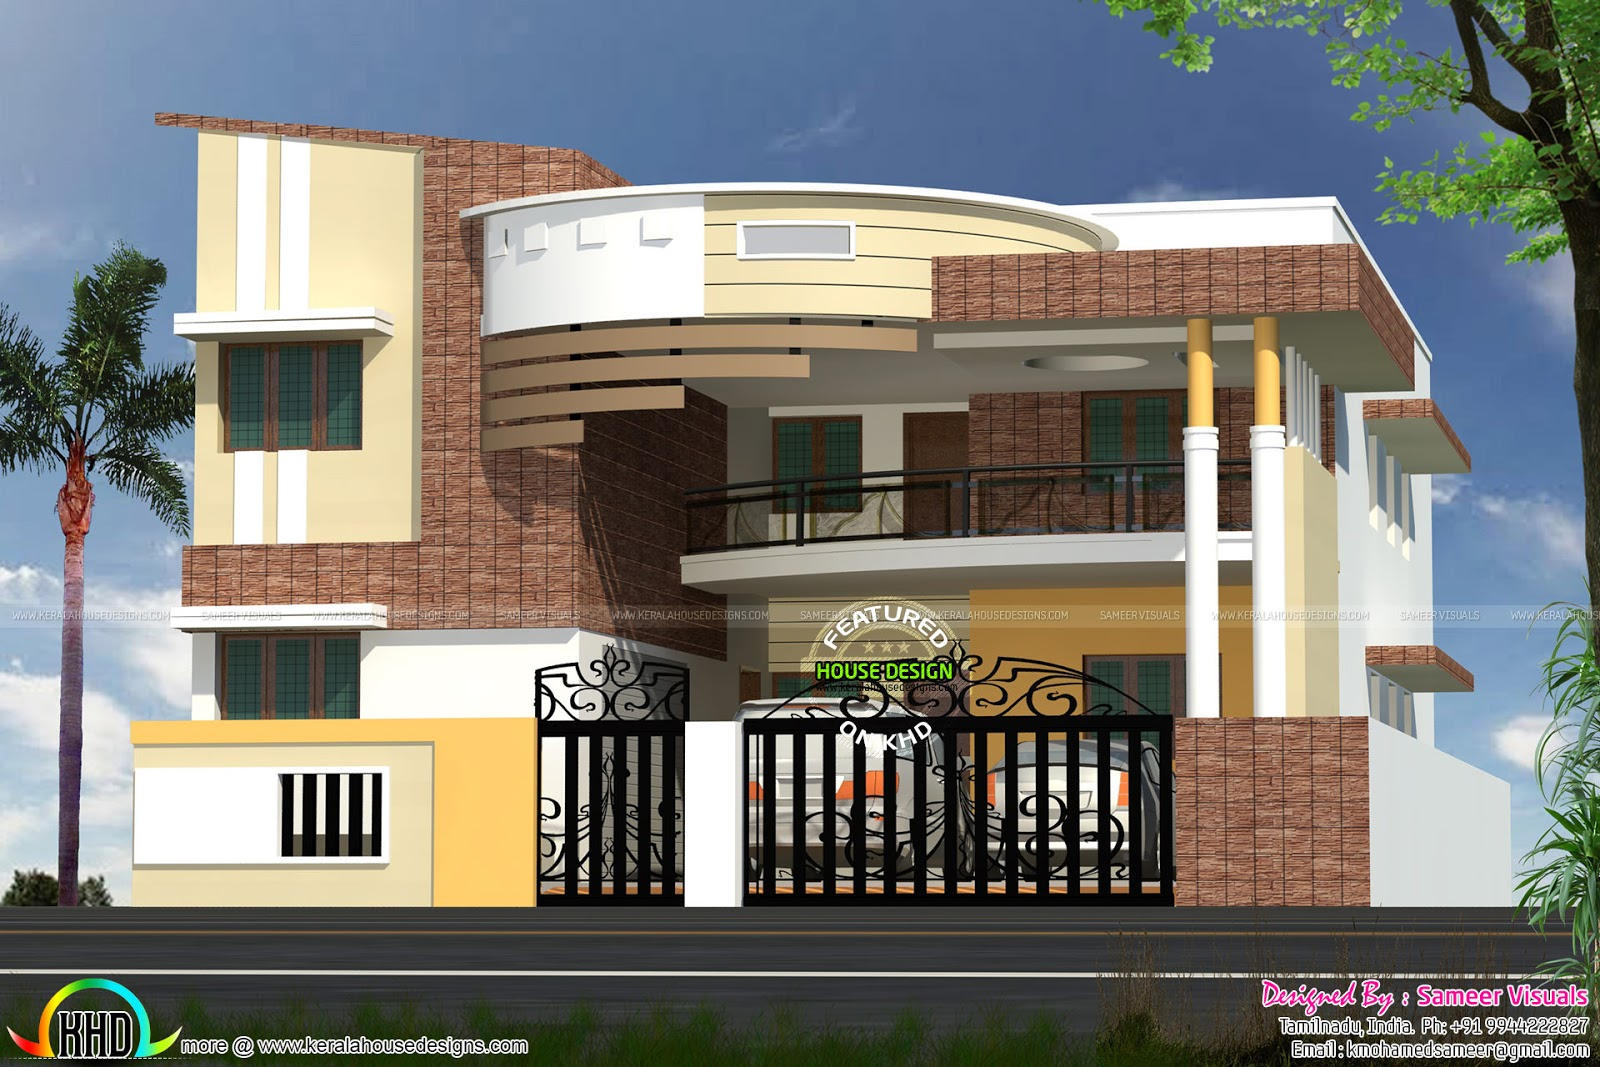 Modern Contemporary South Indian Home Design Kerala Home: free indian home plans and designs